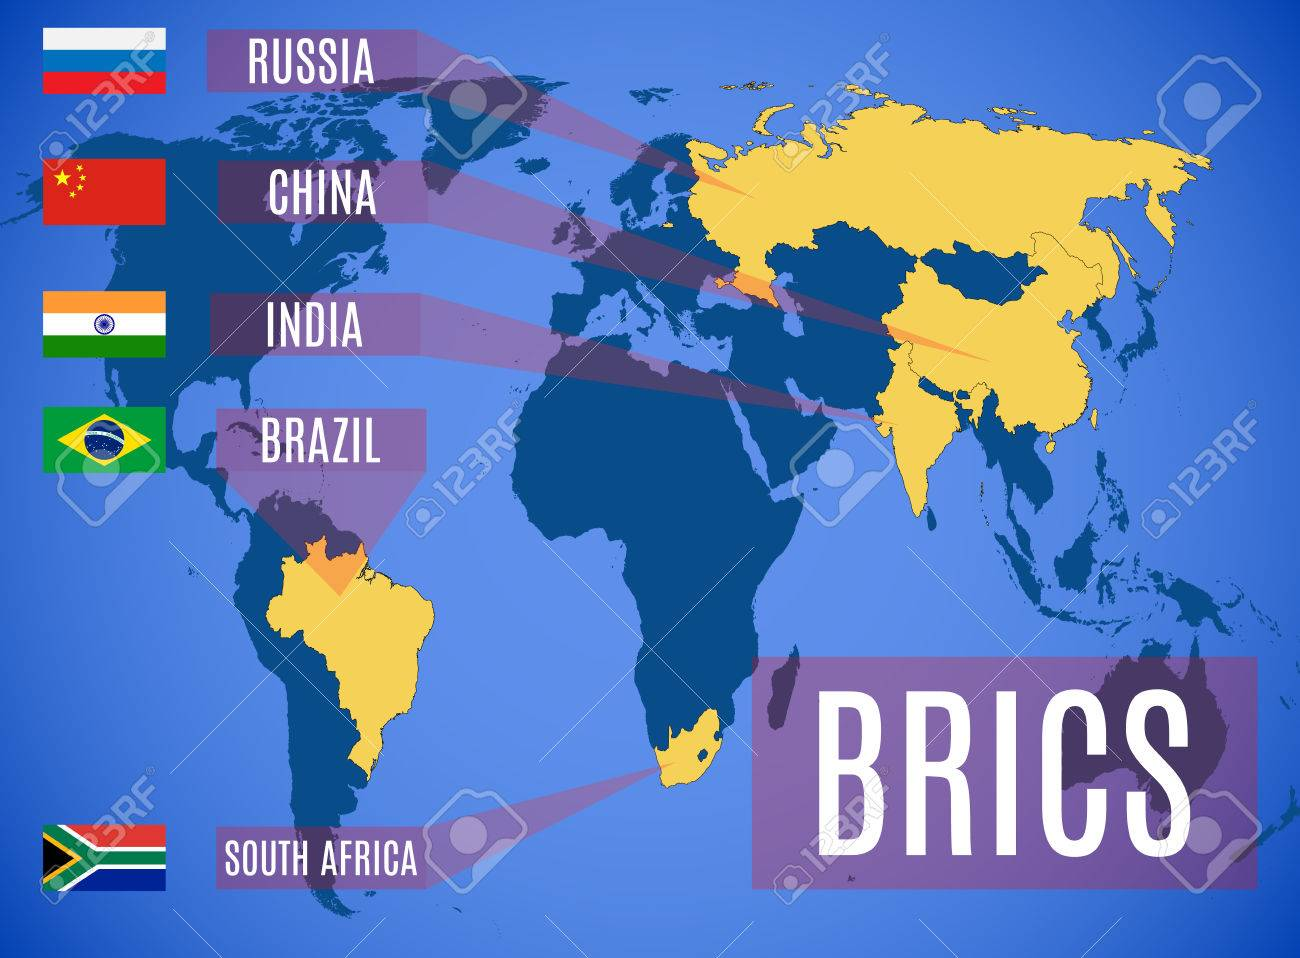 A Schematic Map Of The States Members Of The BRICS (Brazil, Russia ...